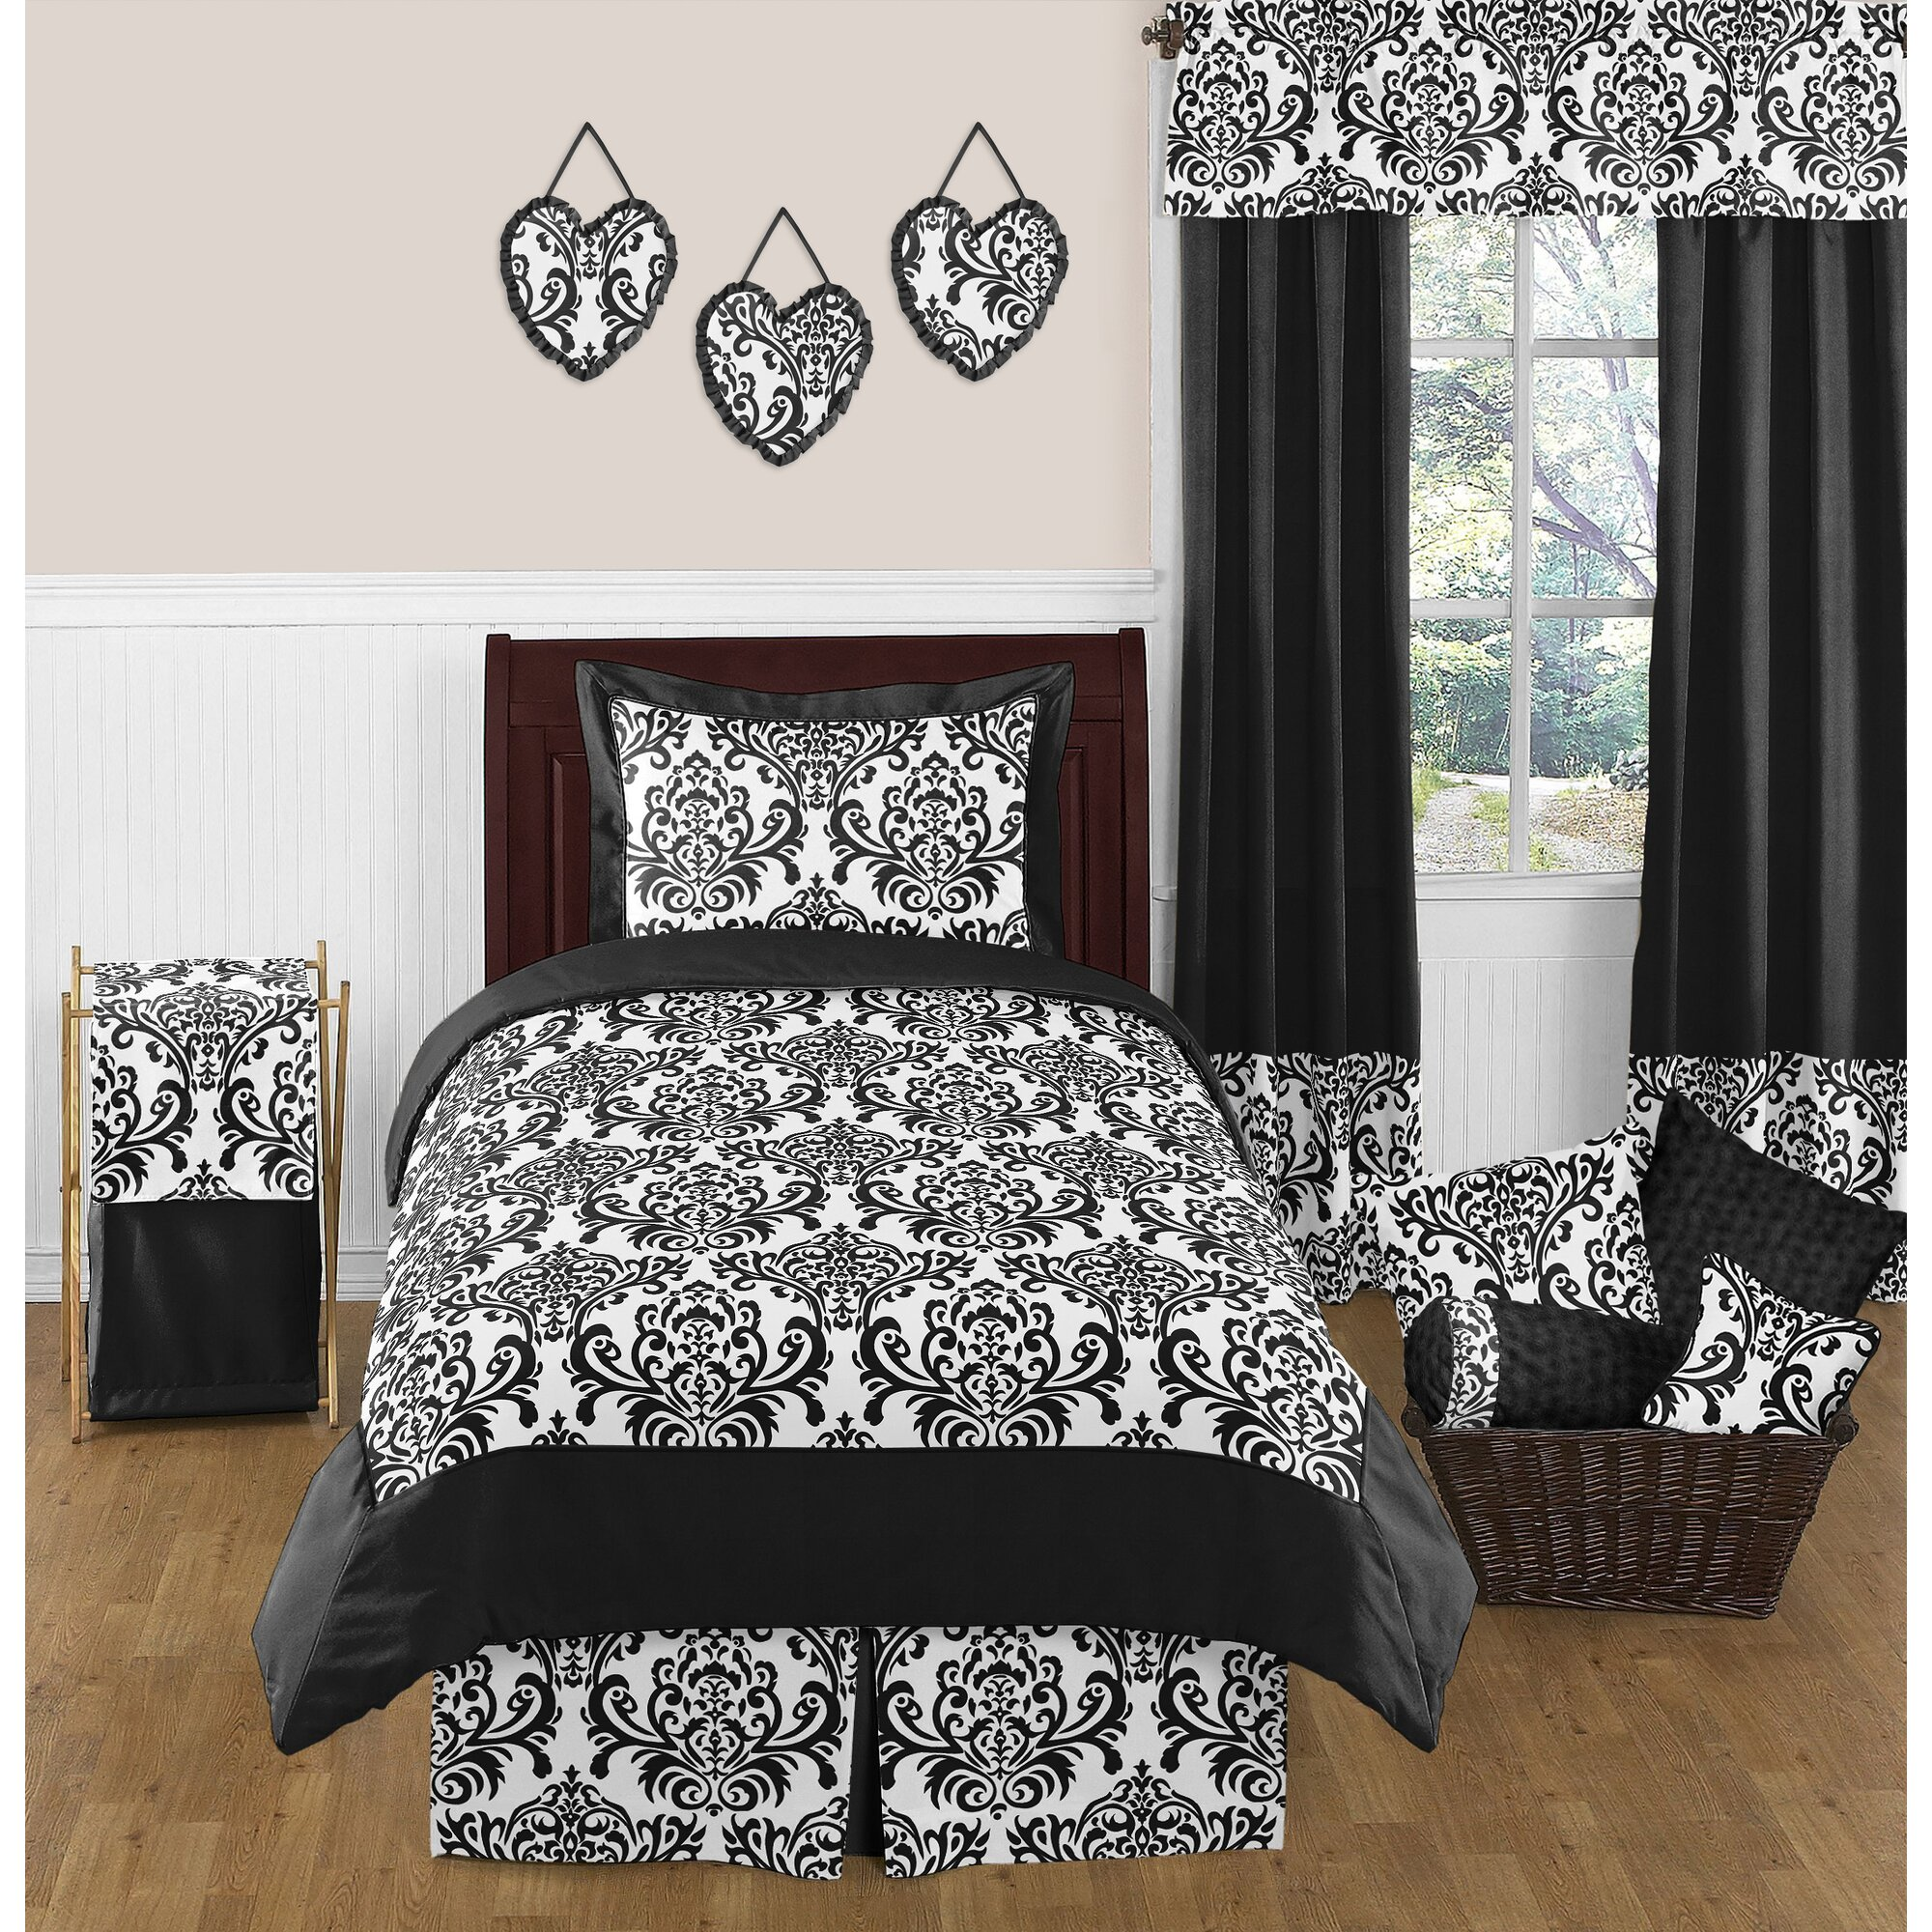 Bed sheet set black and white - Isabella 4 Piece Twin Comforter Set